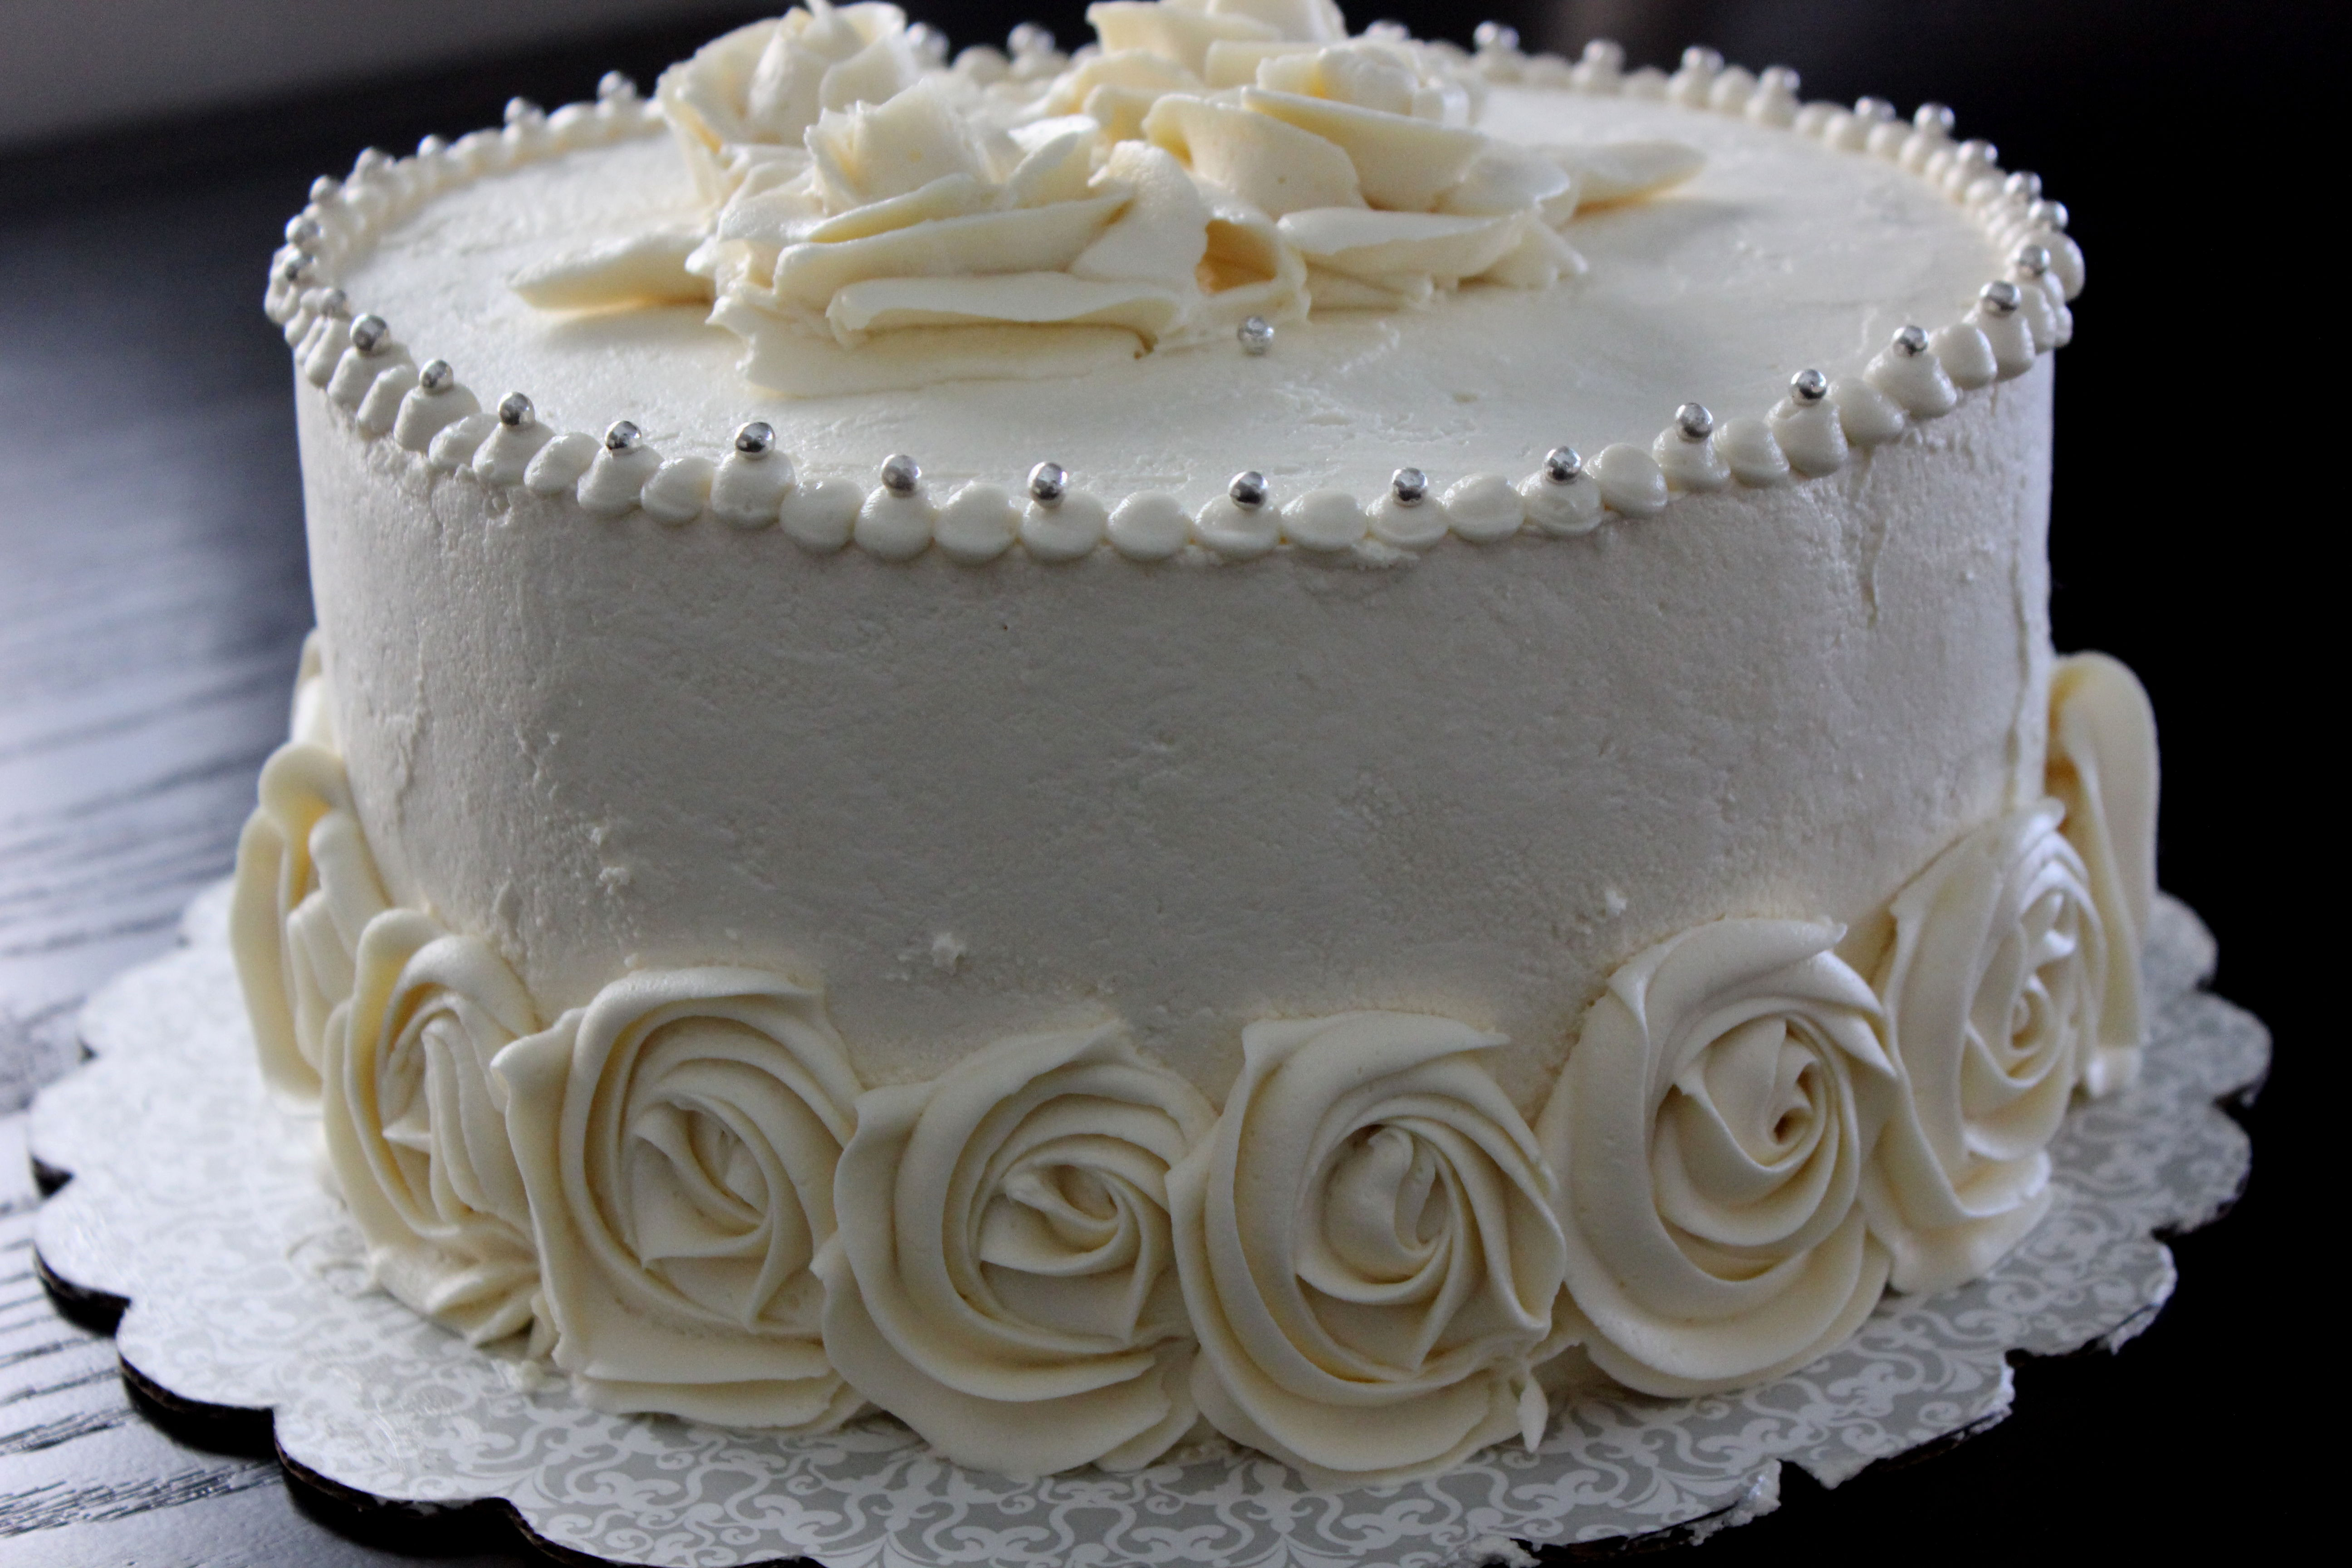 60Th Wedding Anniversary Cakes  11 Ideas For 60th Anniversary Cakes 60th Wedding